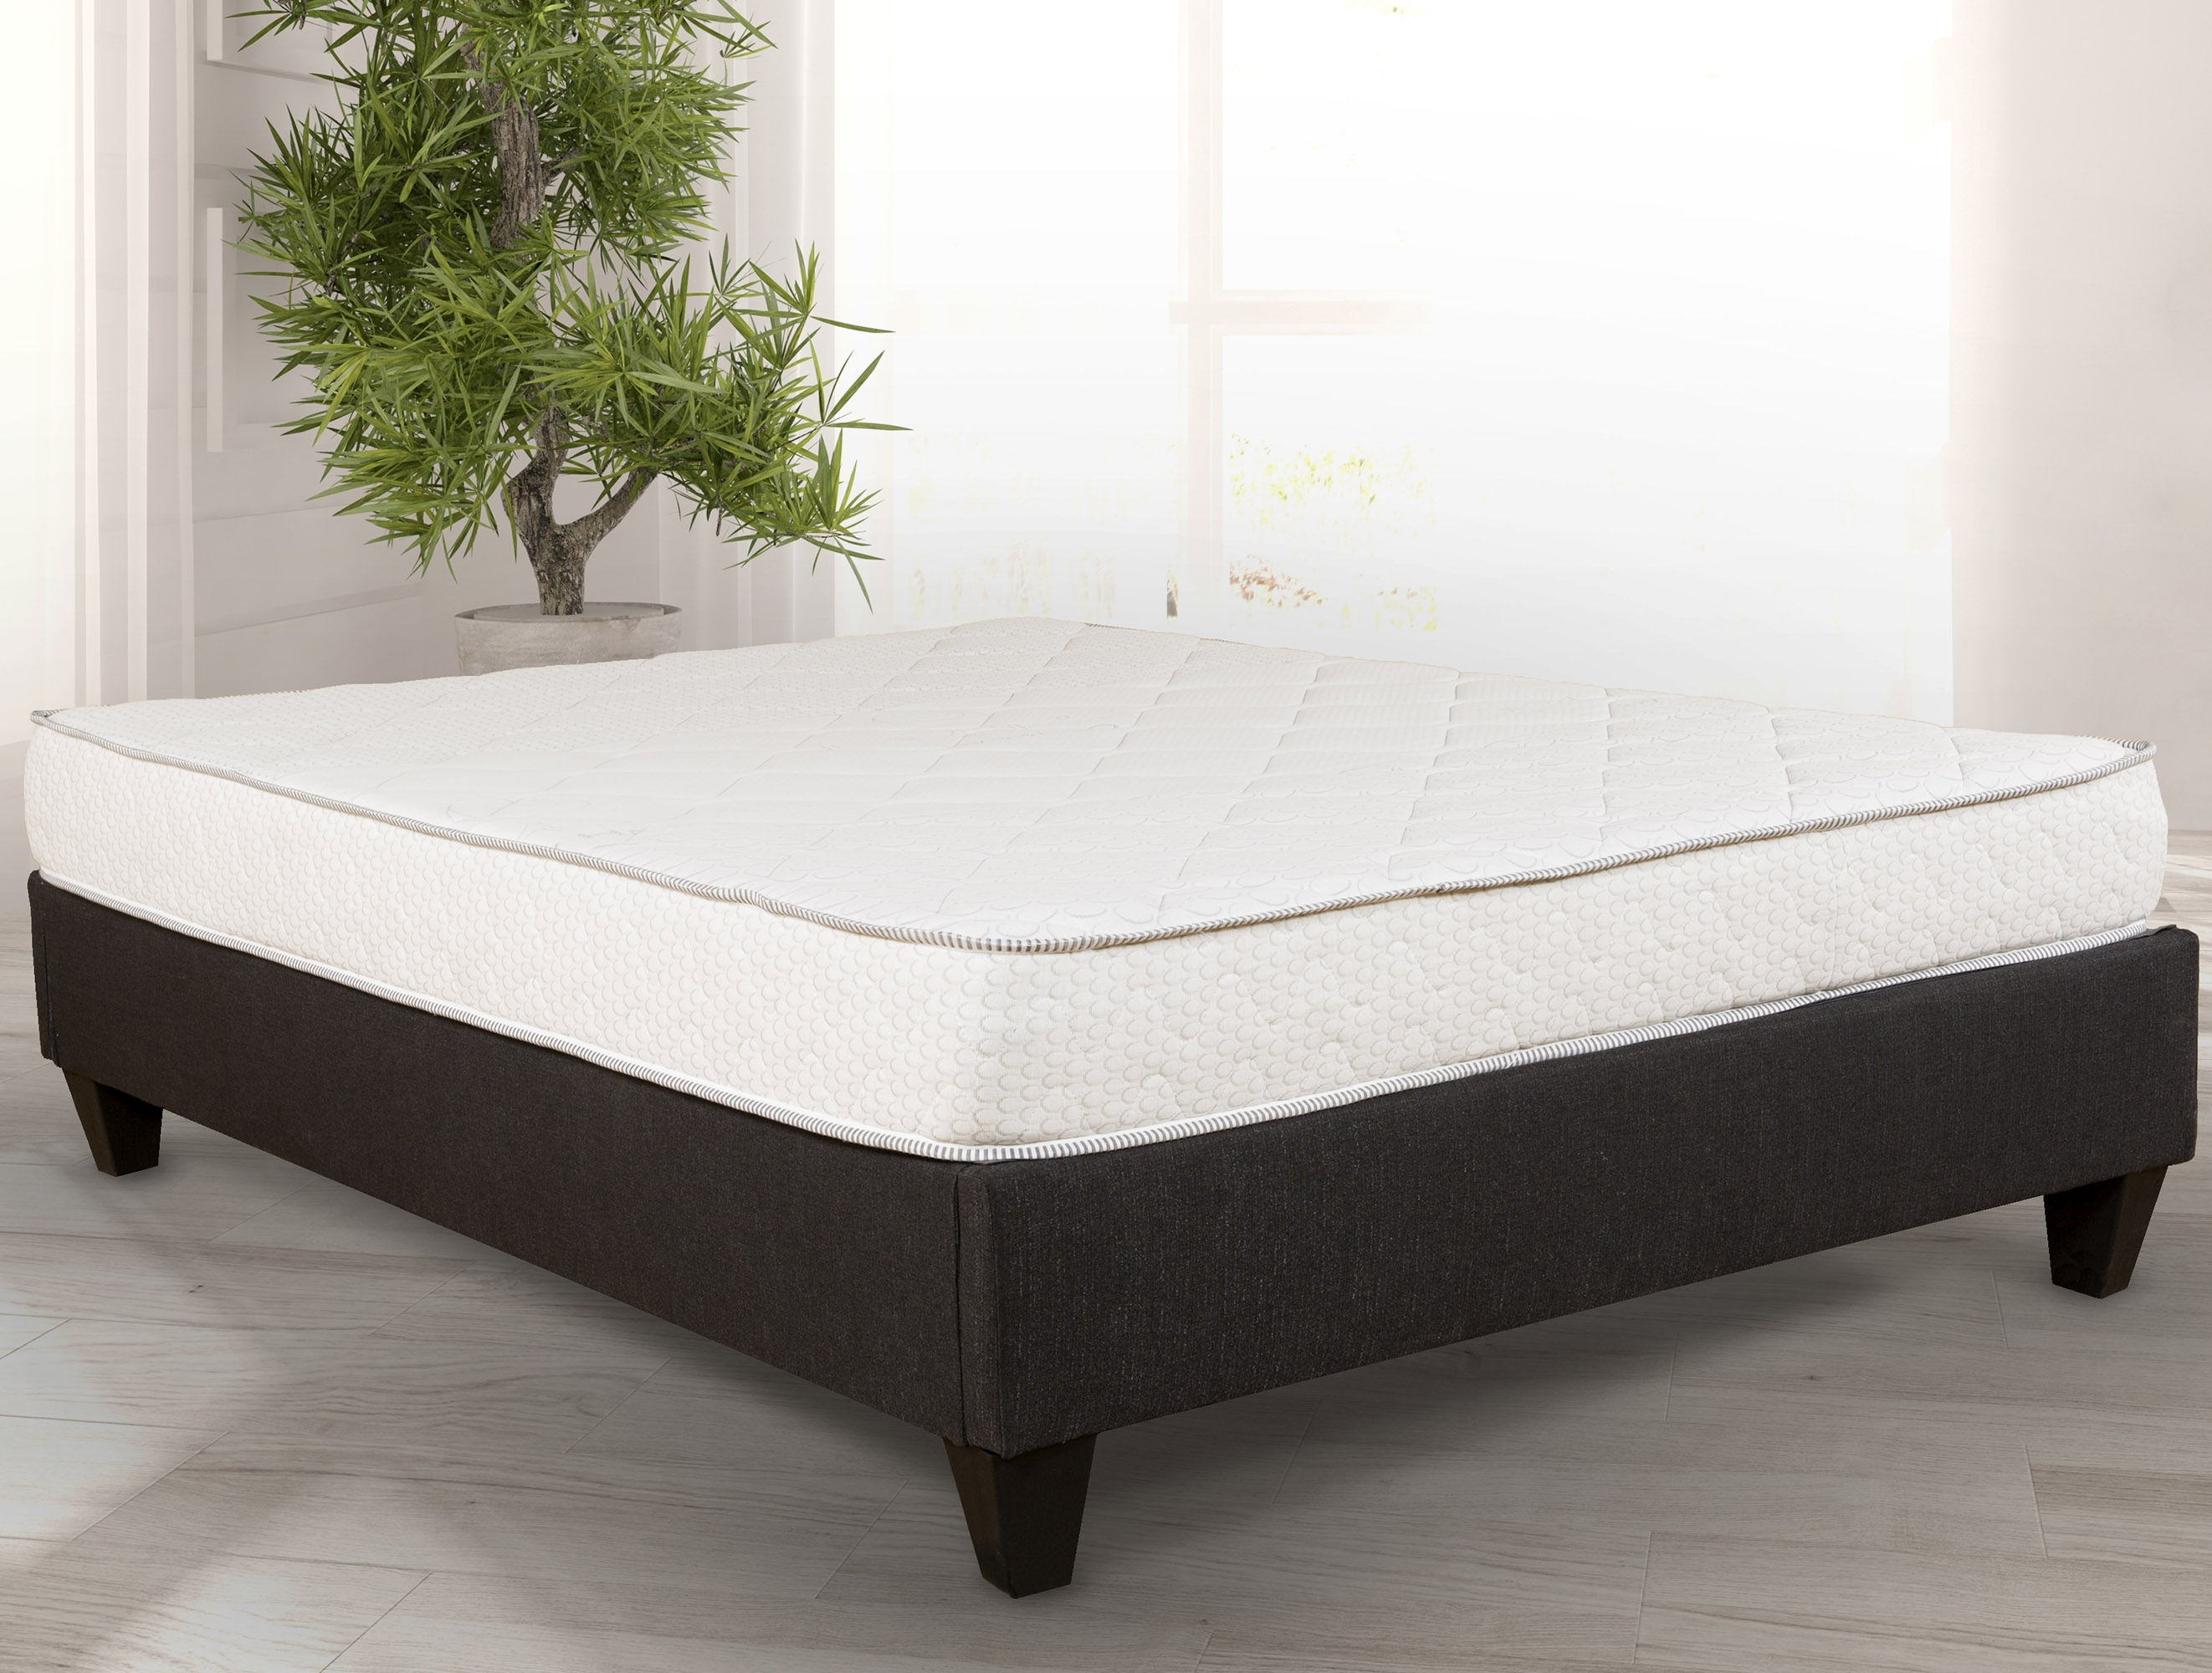 Napoli Gel Memory Foam Mattress Made In Italy Standard Furniture